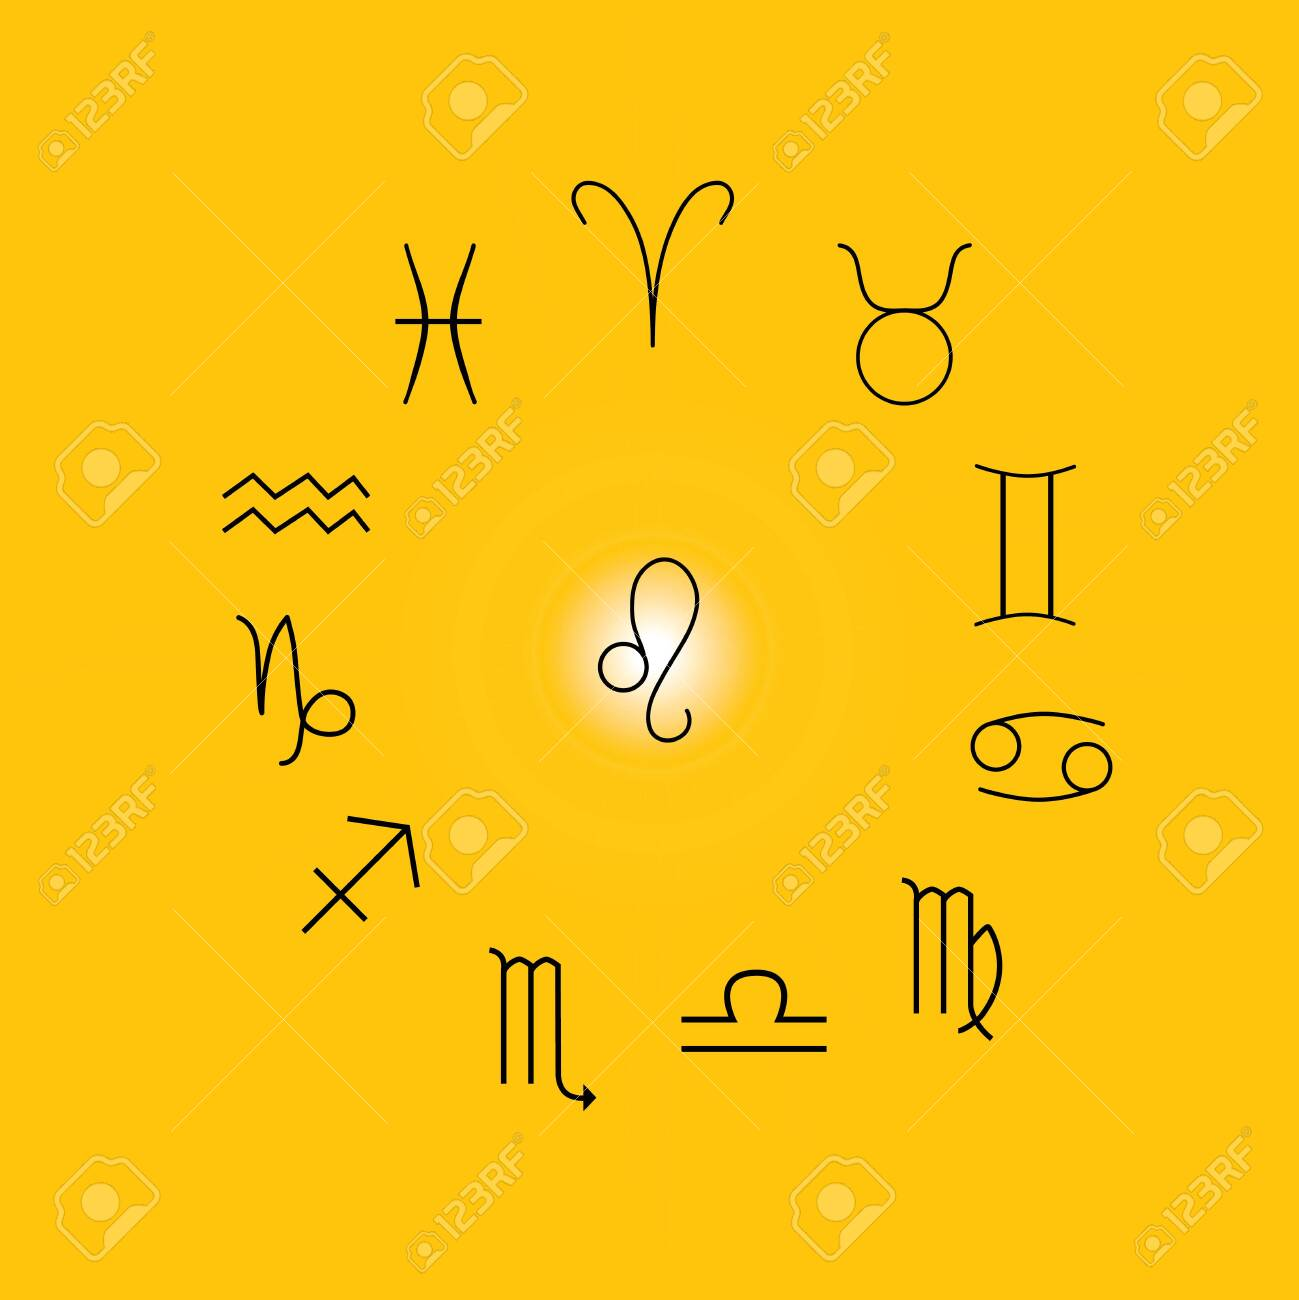 Astrological Signs Symbols Of Zodiac Horoscope Astrology And Royalty Free Cliparts Vectors And Stock Illustration Image 122589465